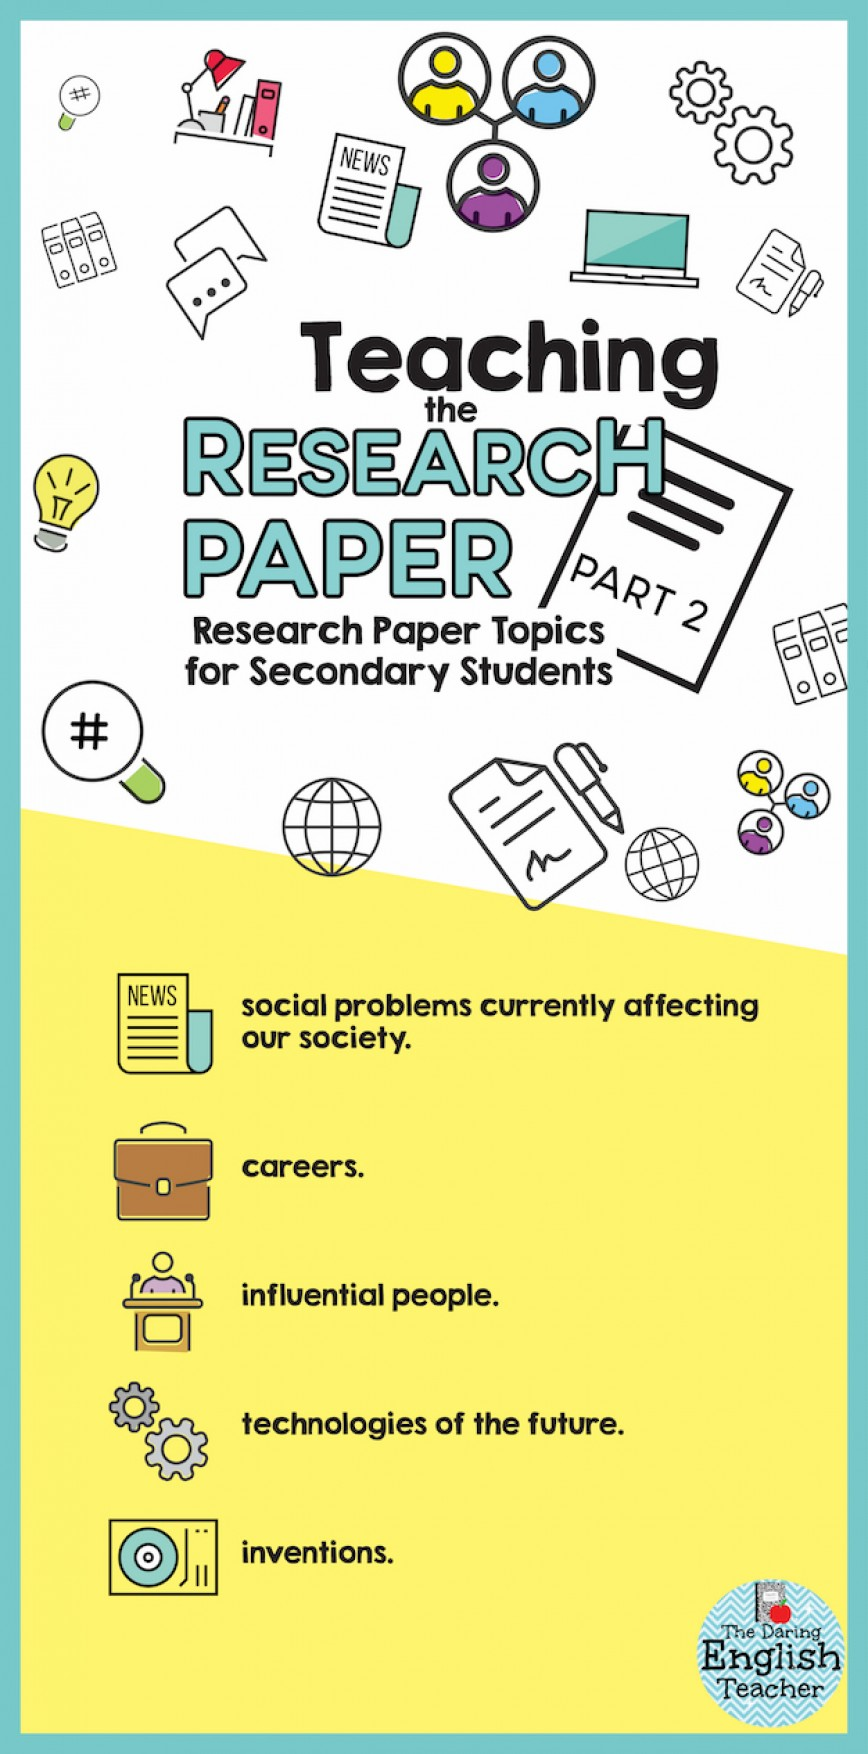 020 Infographic2bp22b2 Research Paper Topic For Unusual A About Business Topics 2018 In Psychology 868